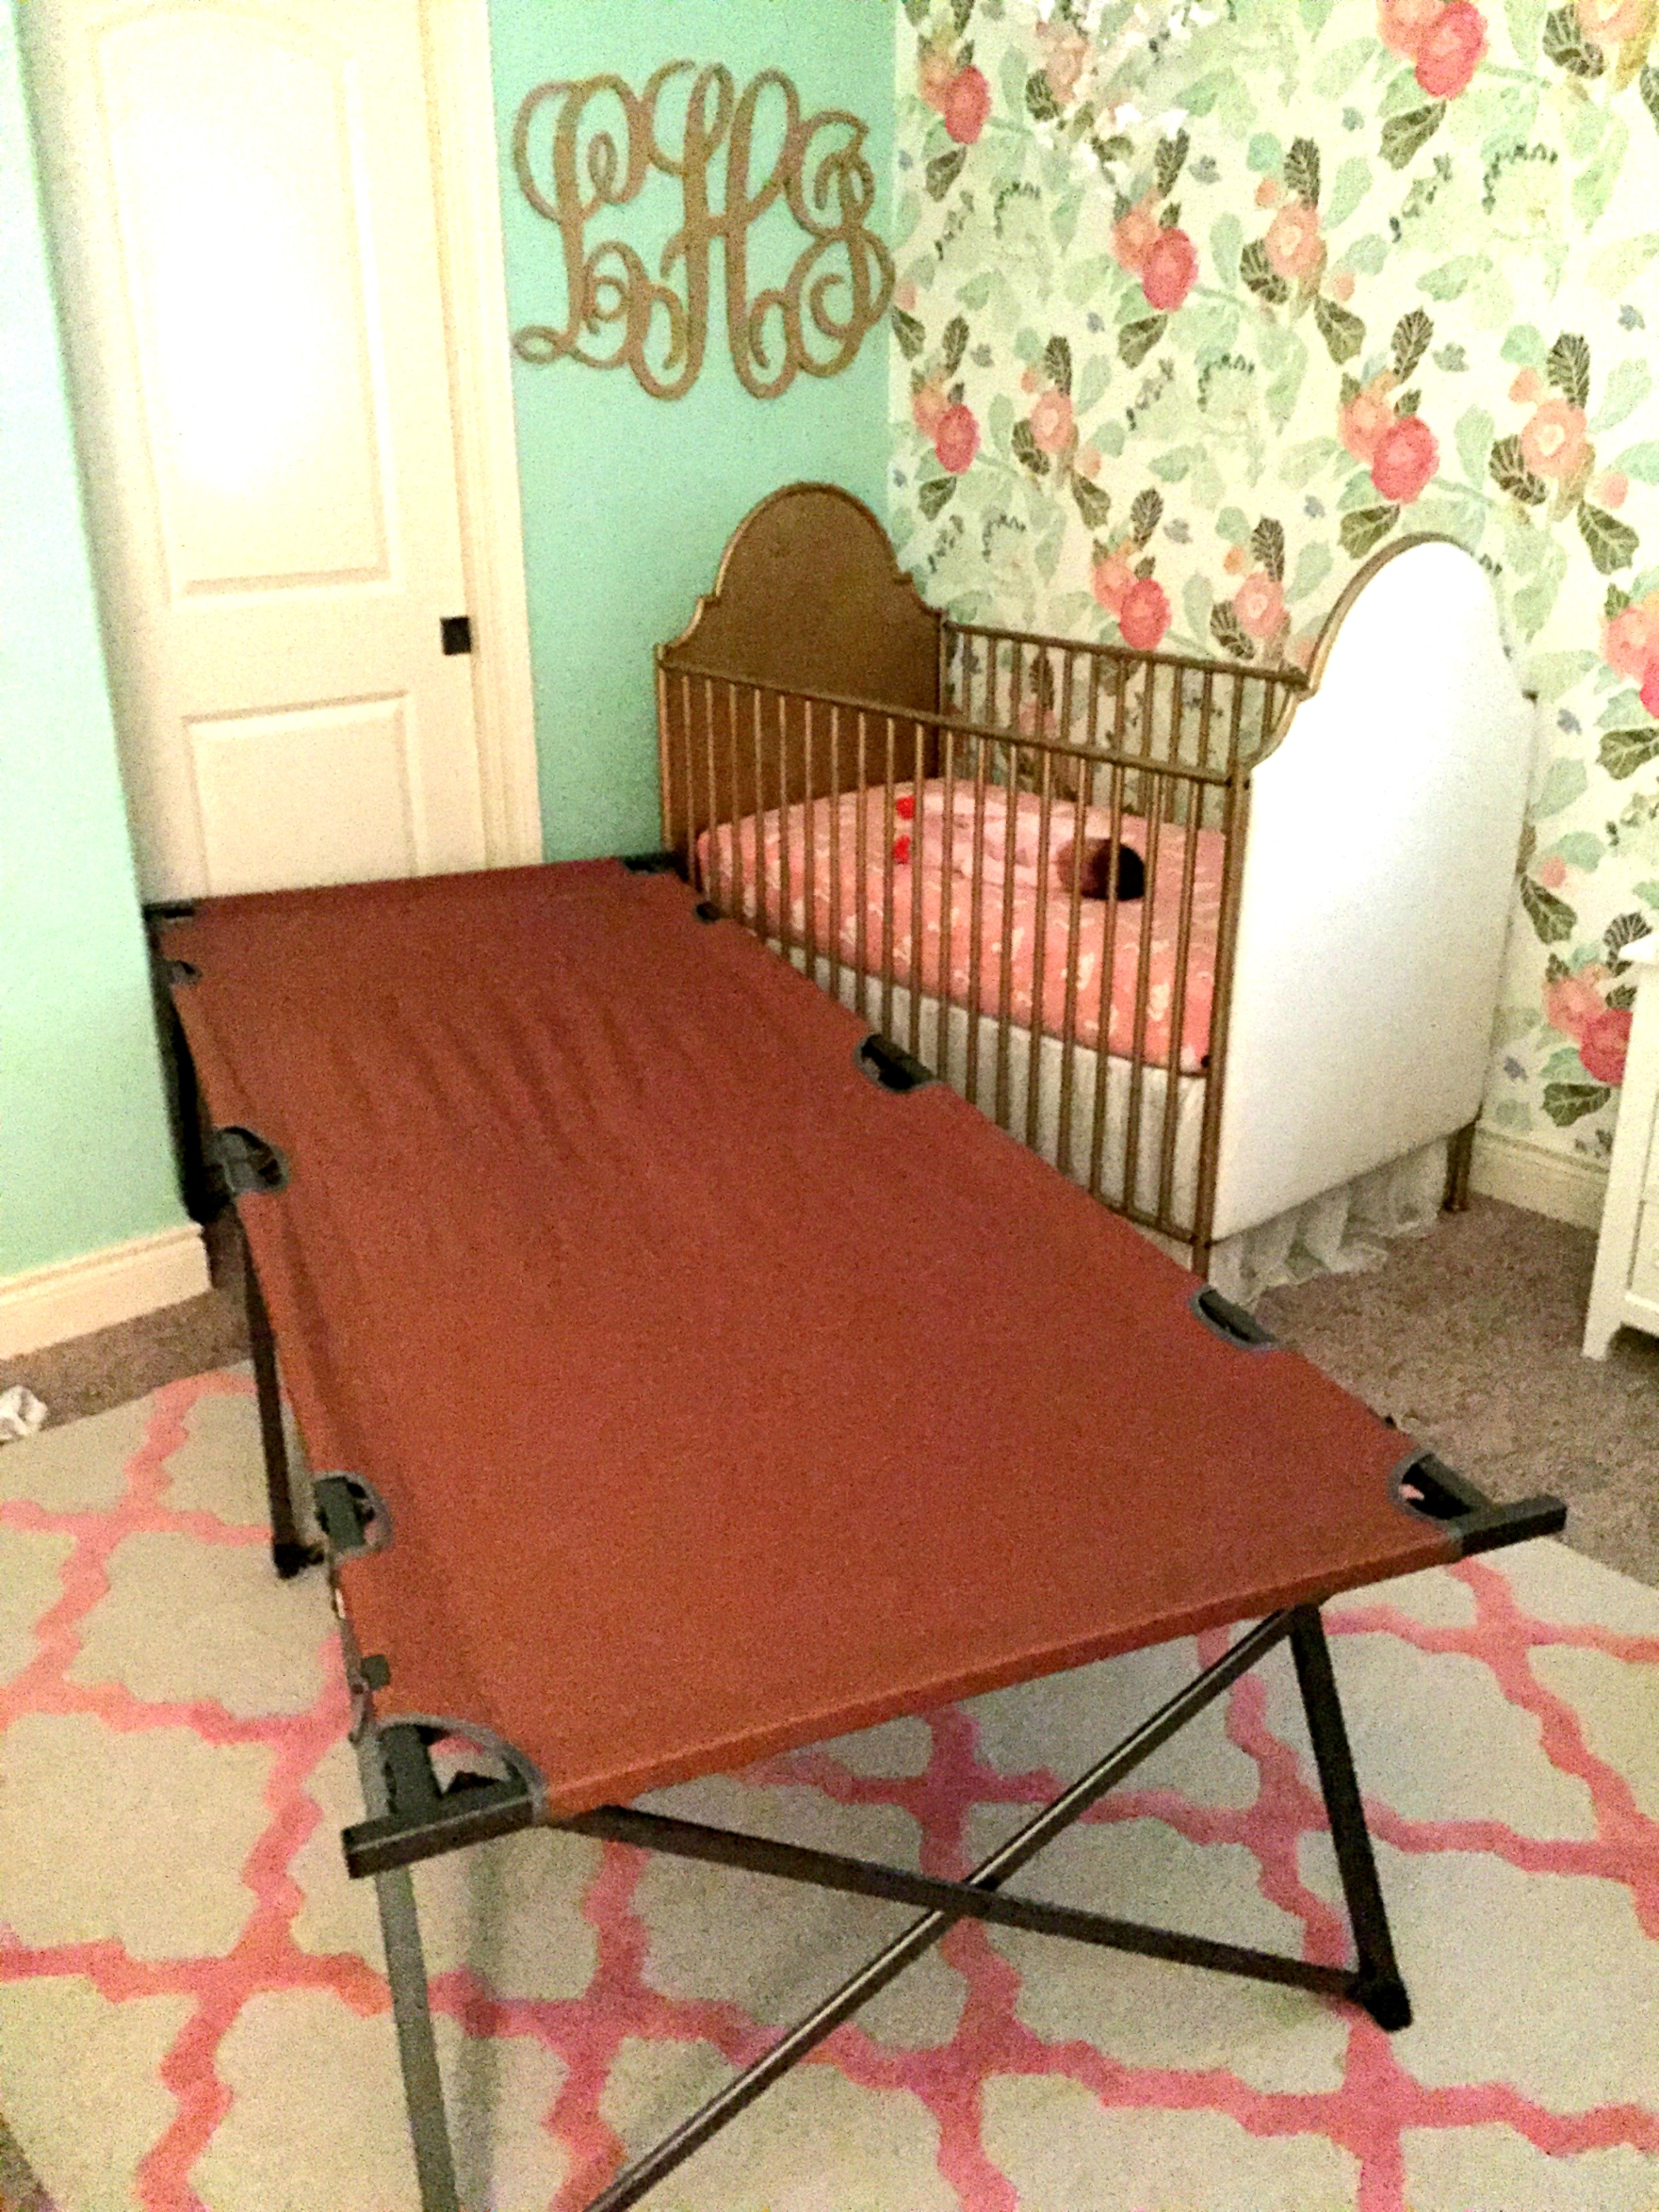 The army cot. I don't even know.